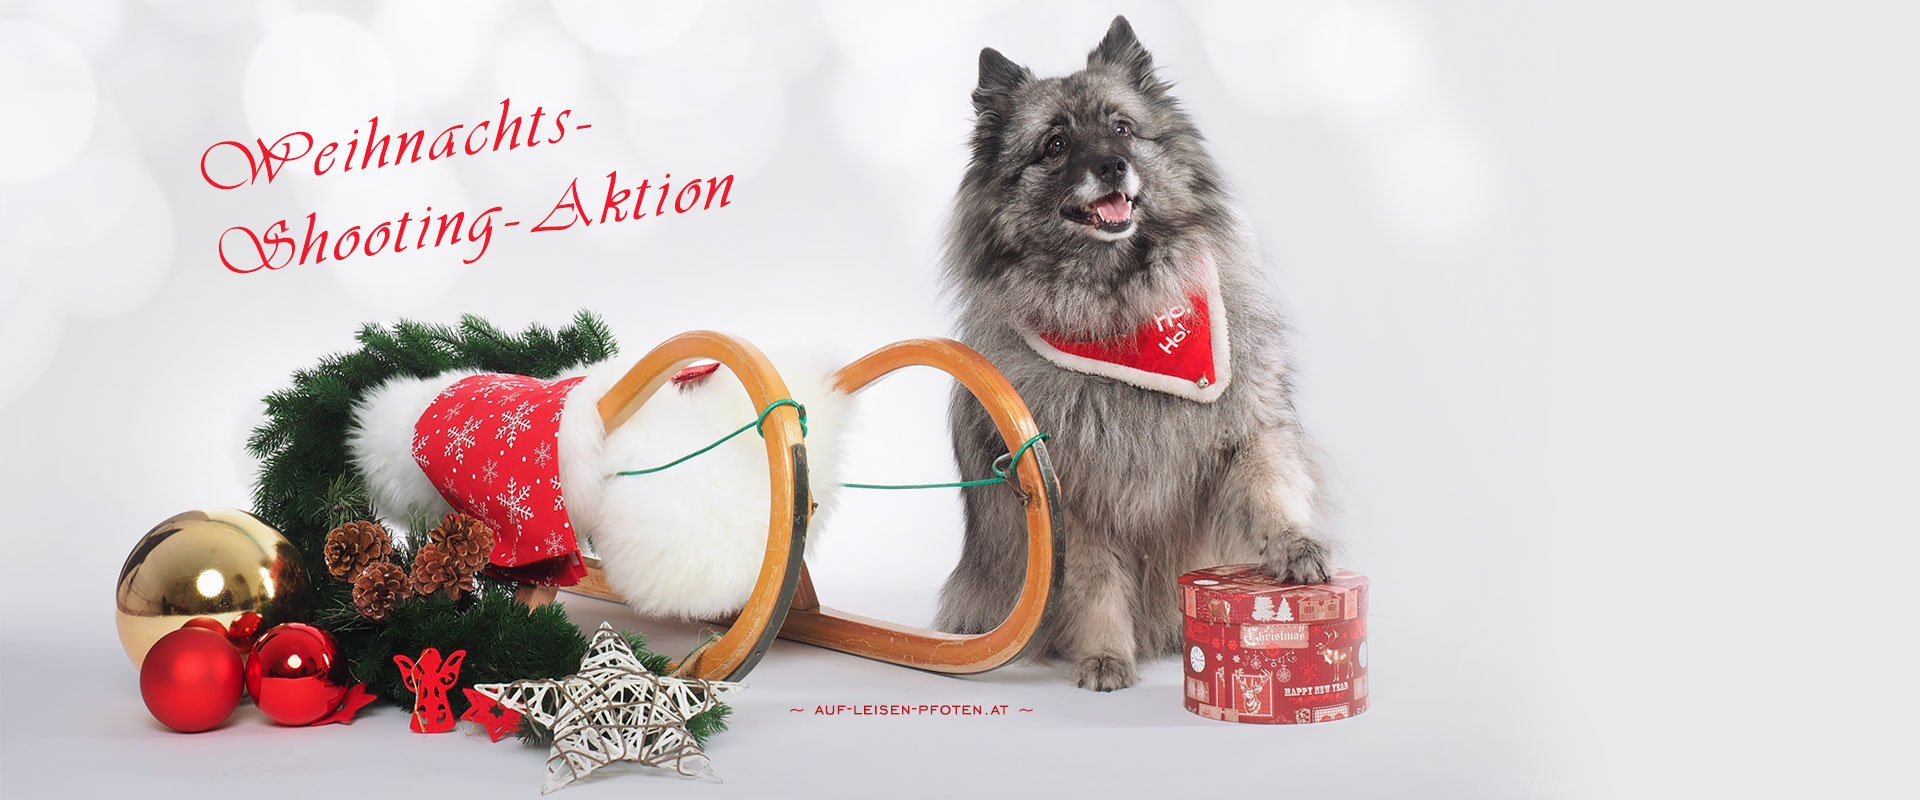 Weihnachtsshooting Aktion 2018